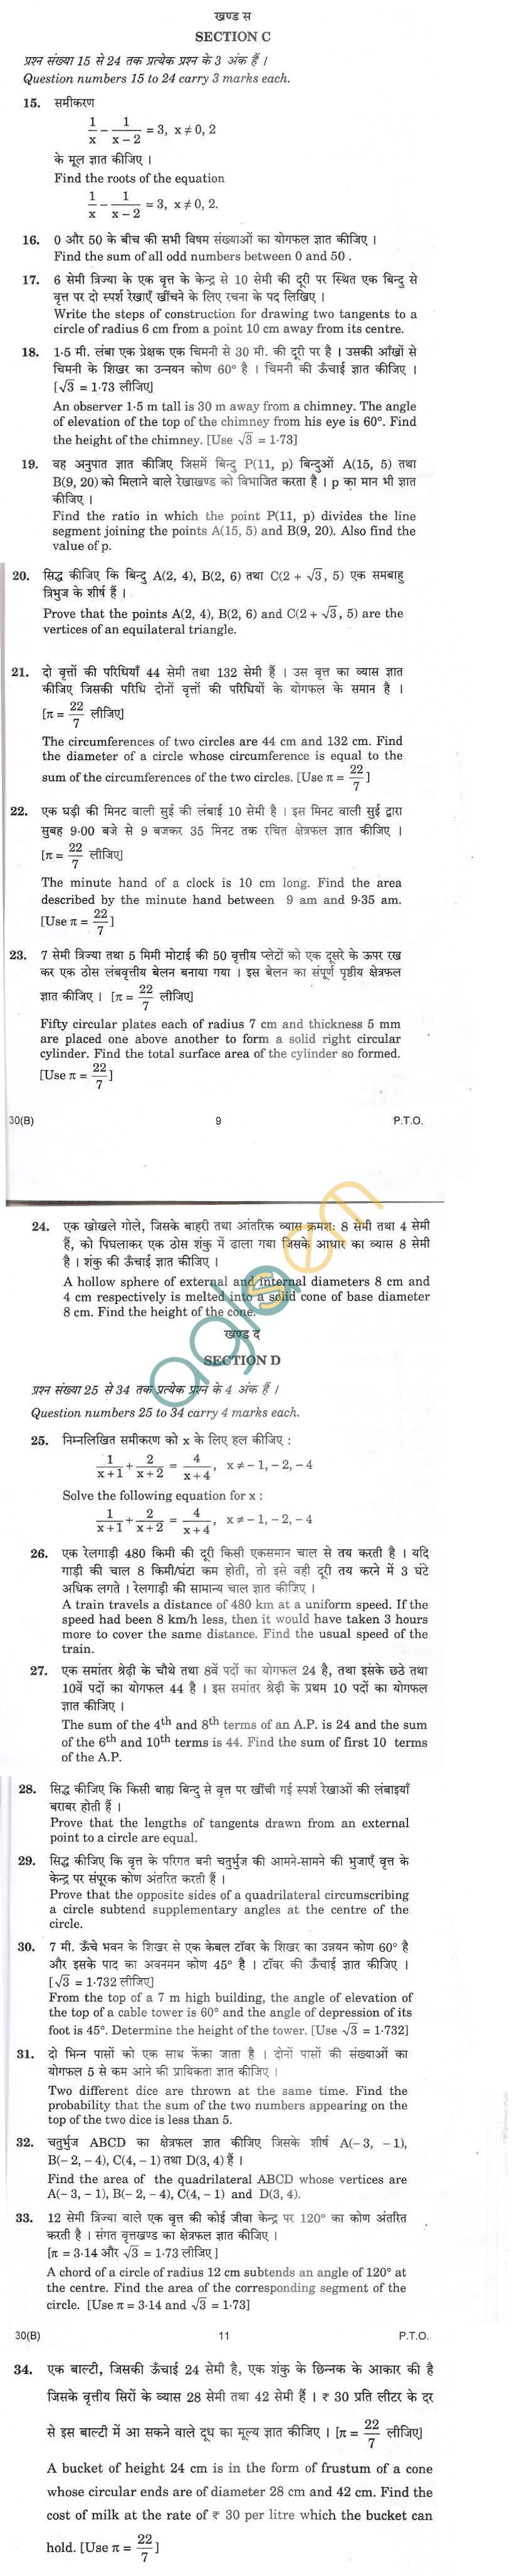 CBSE Compartment Exam 2013 Class X Question Paper - Mathematics for Blind Candidates